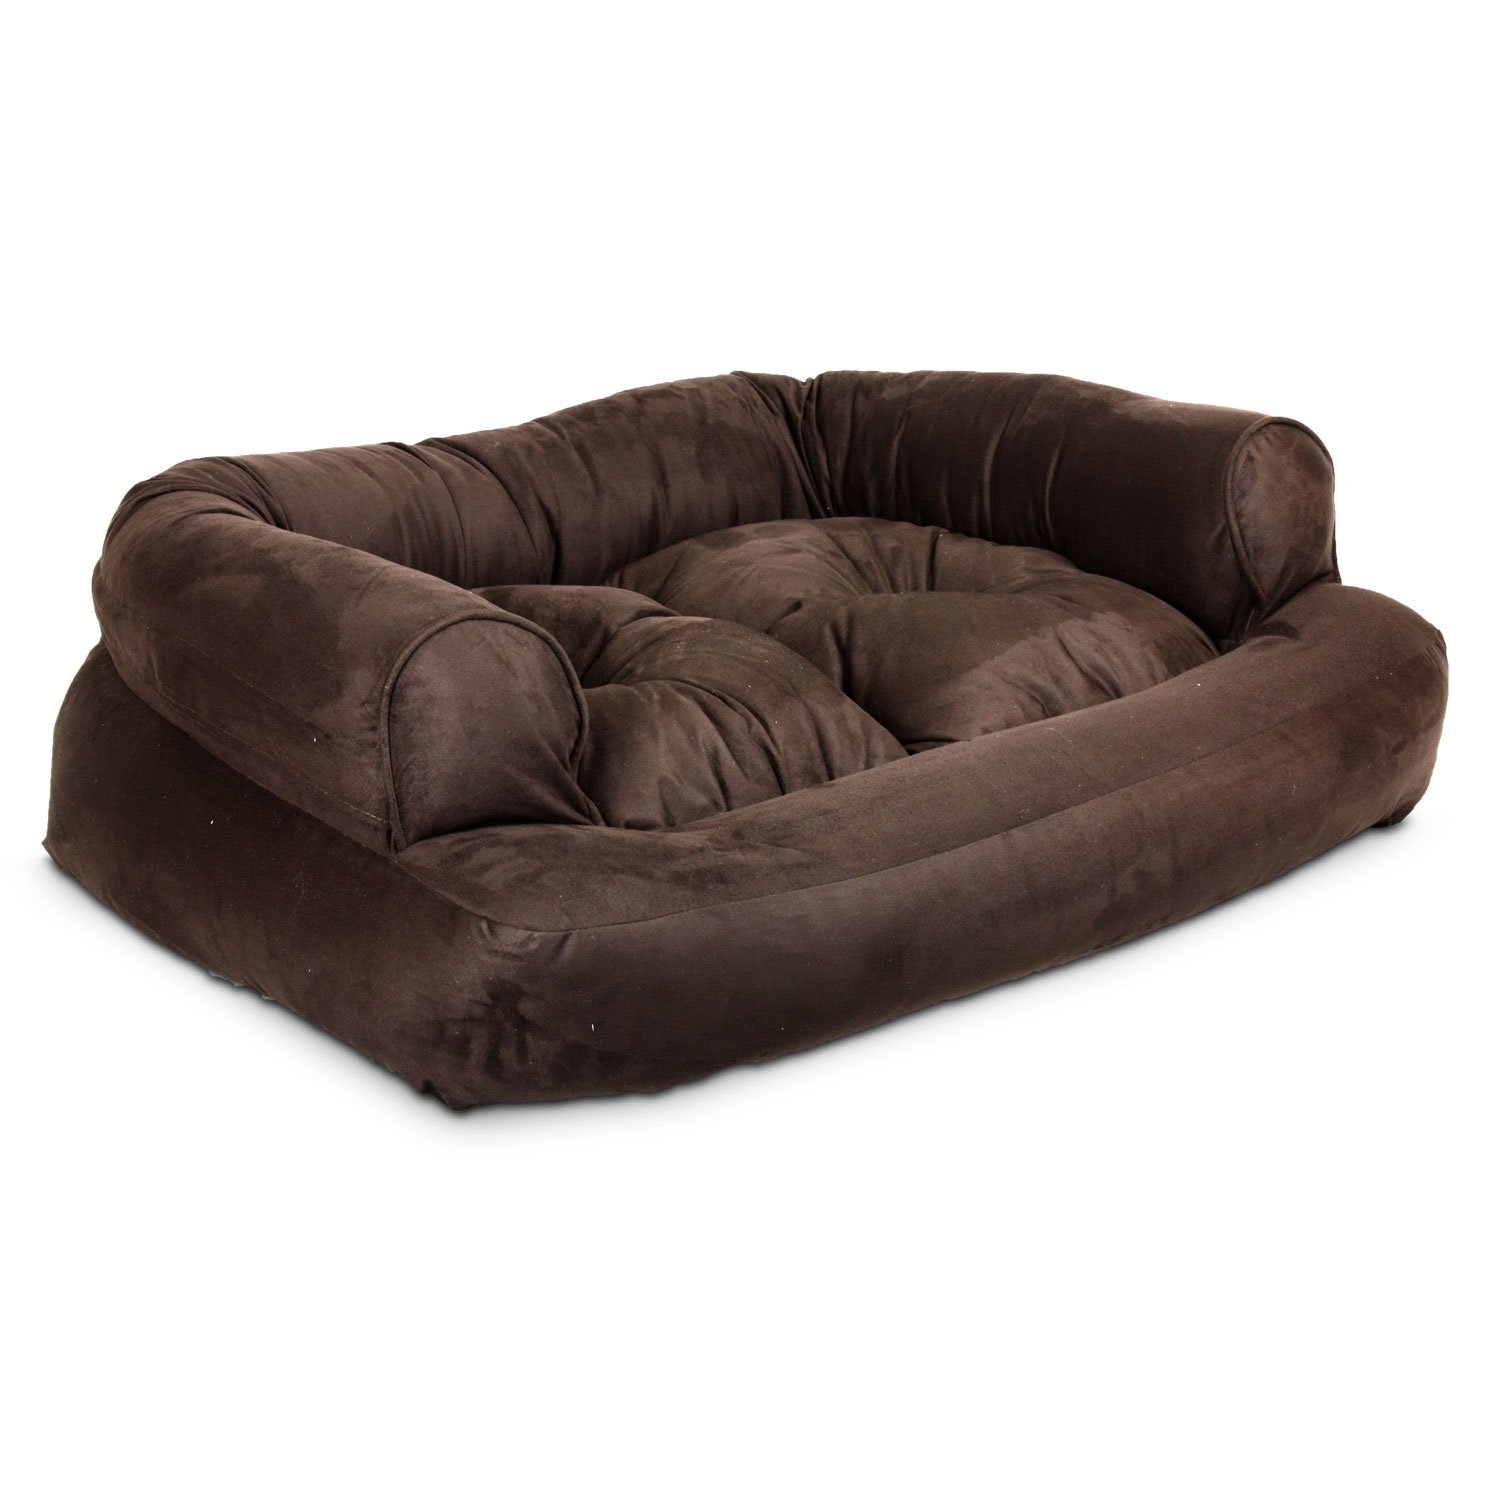 Total fab luxury designer dog beds for small and large dogs for X large dog sofa bed